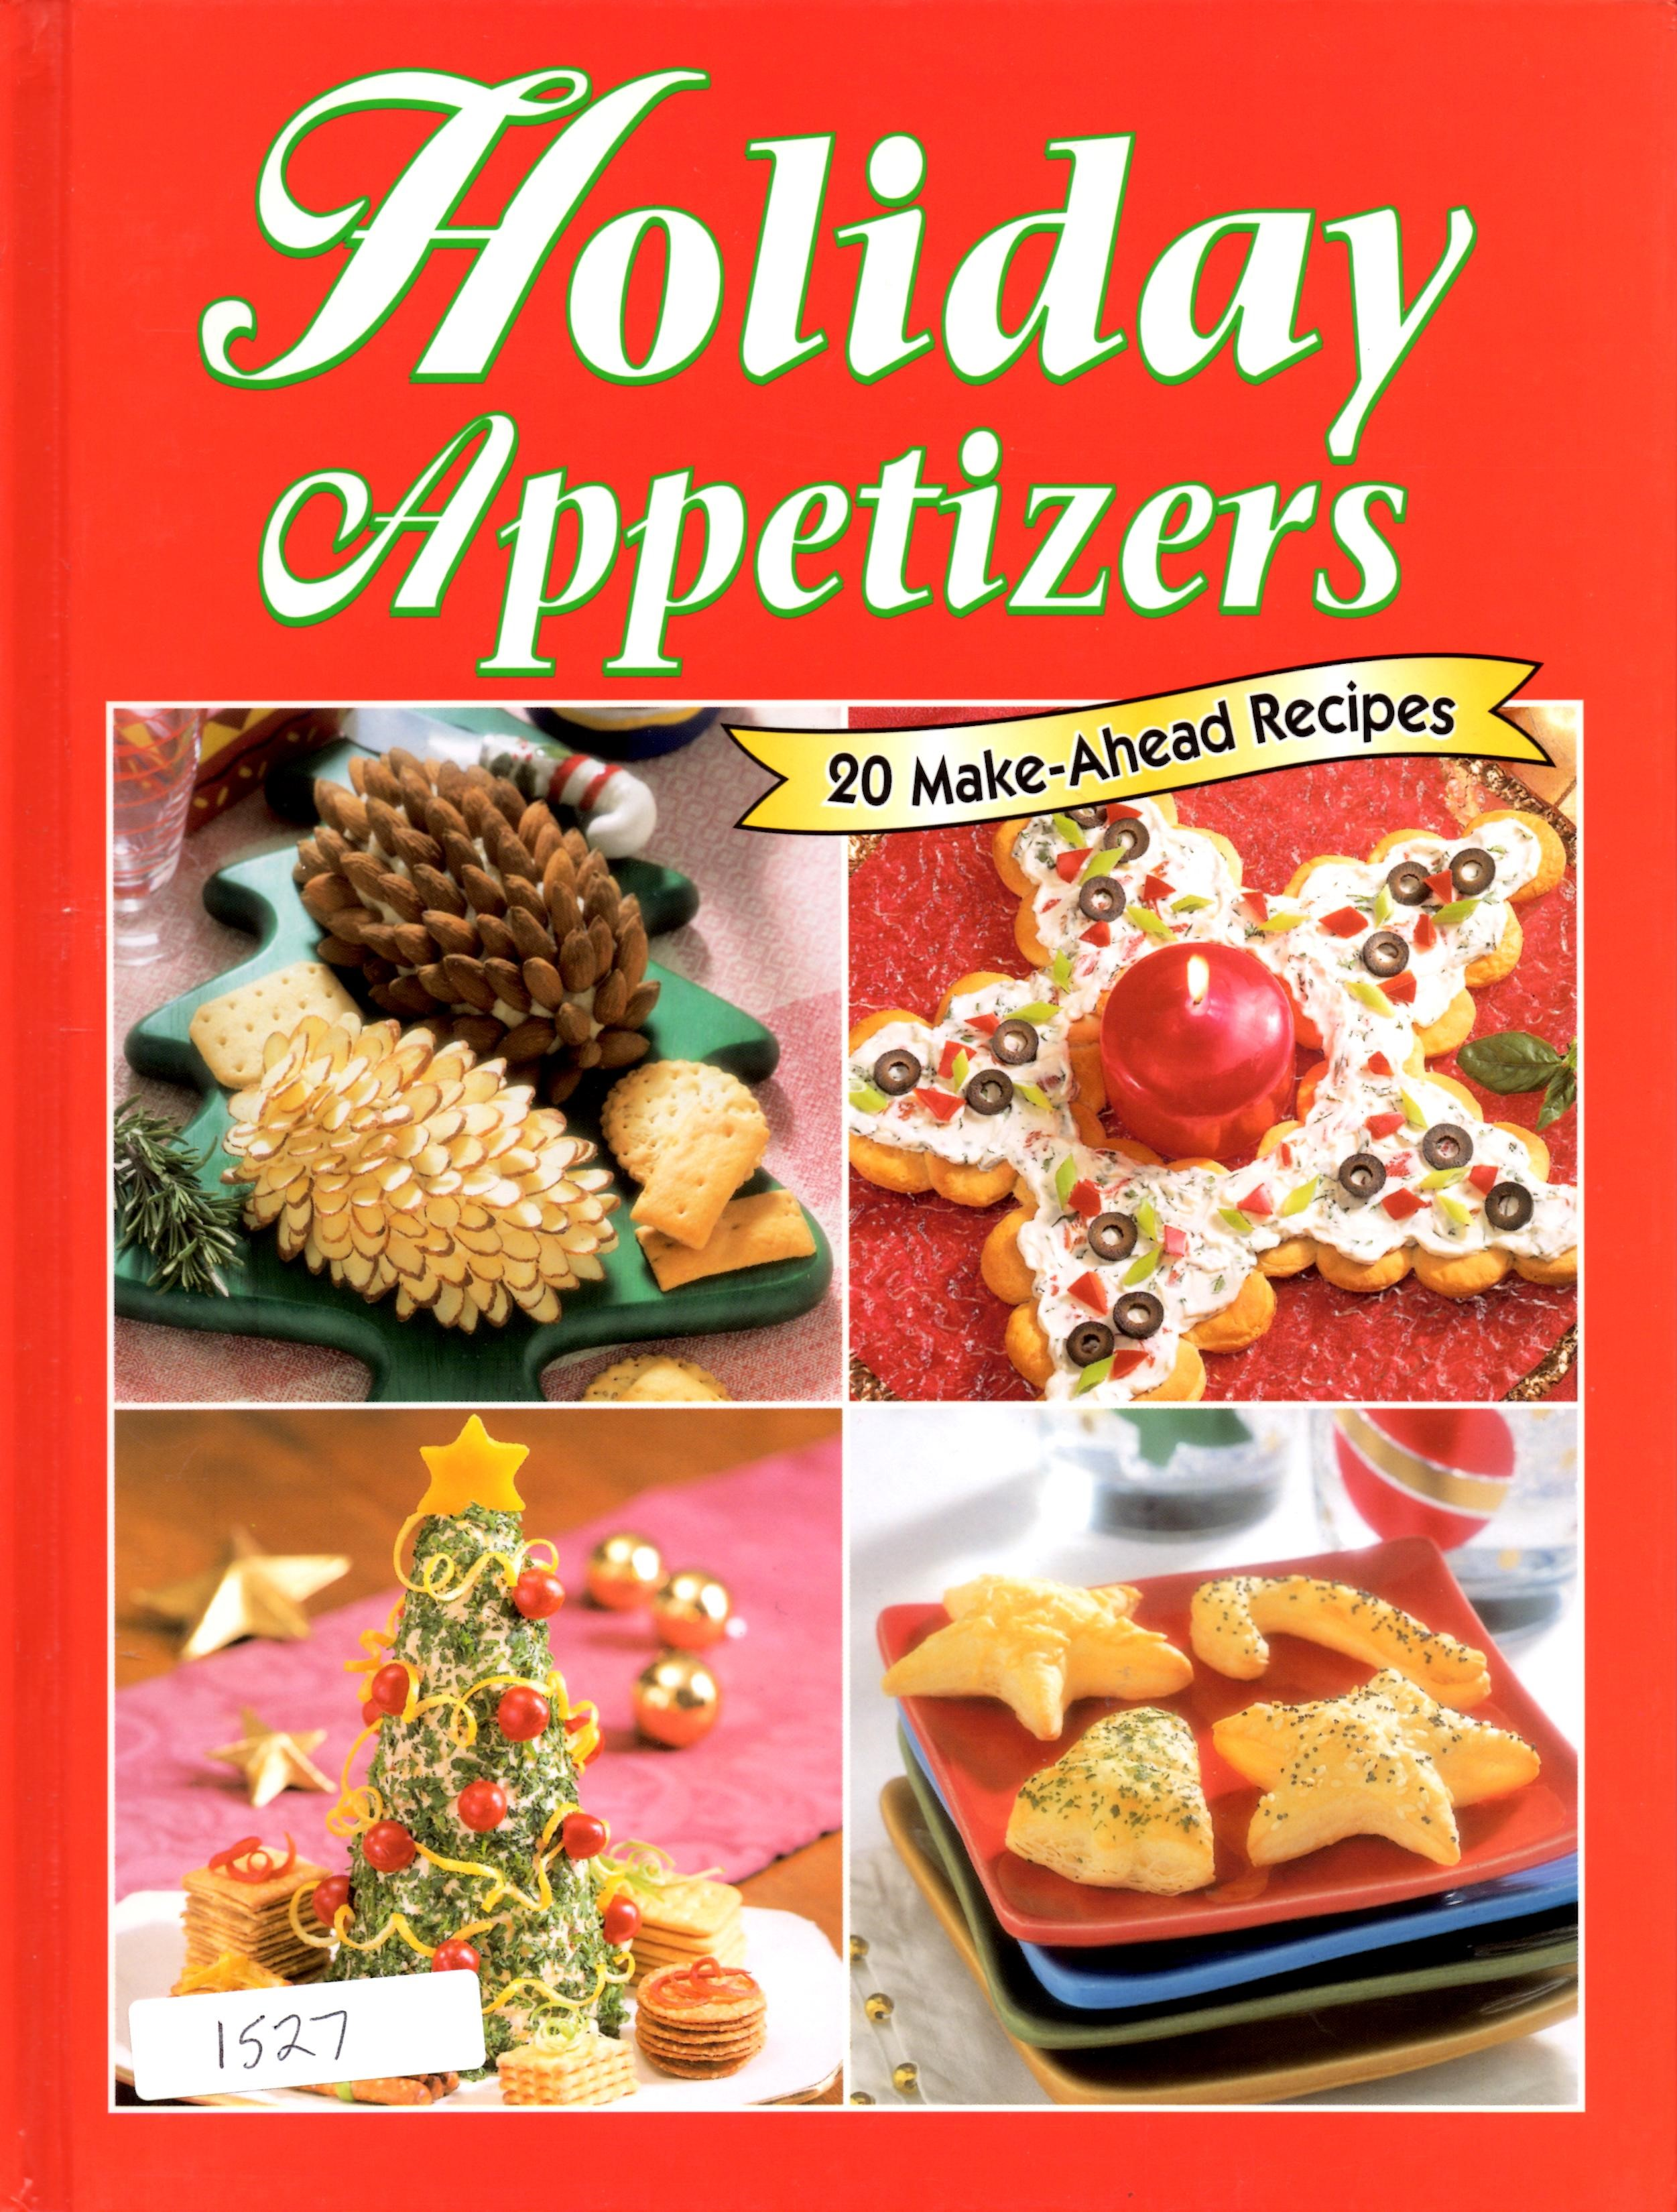 Image for Holiday Appetizers 20 Make-Ahead Recipes